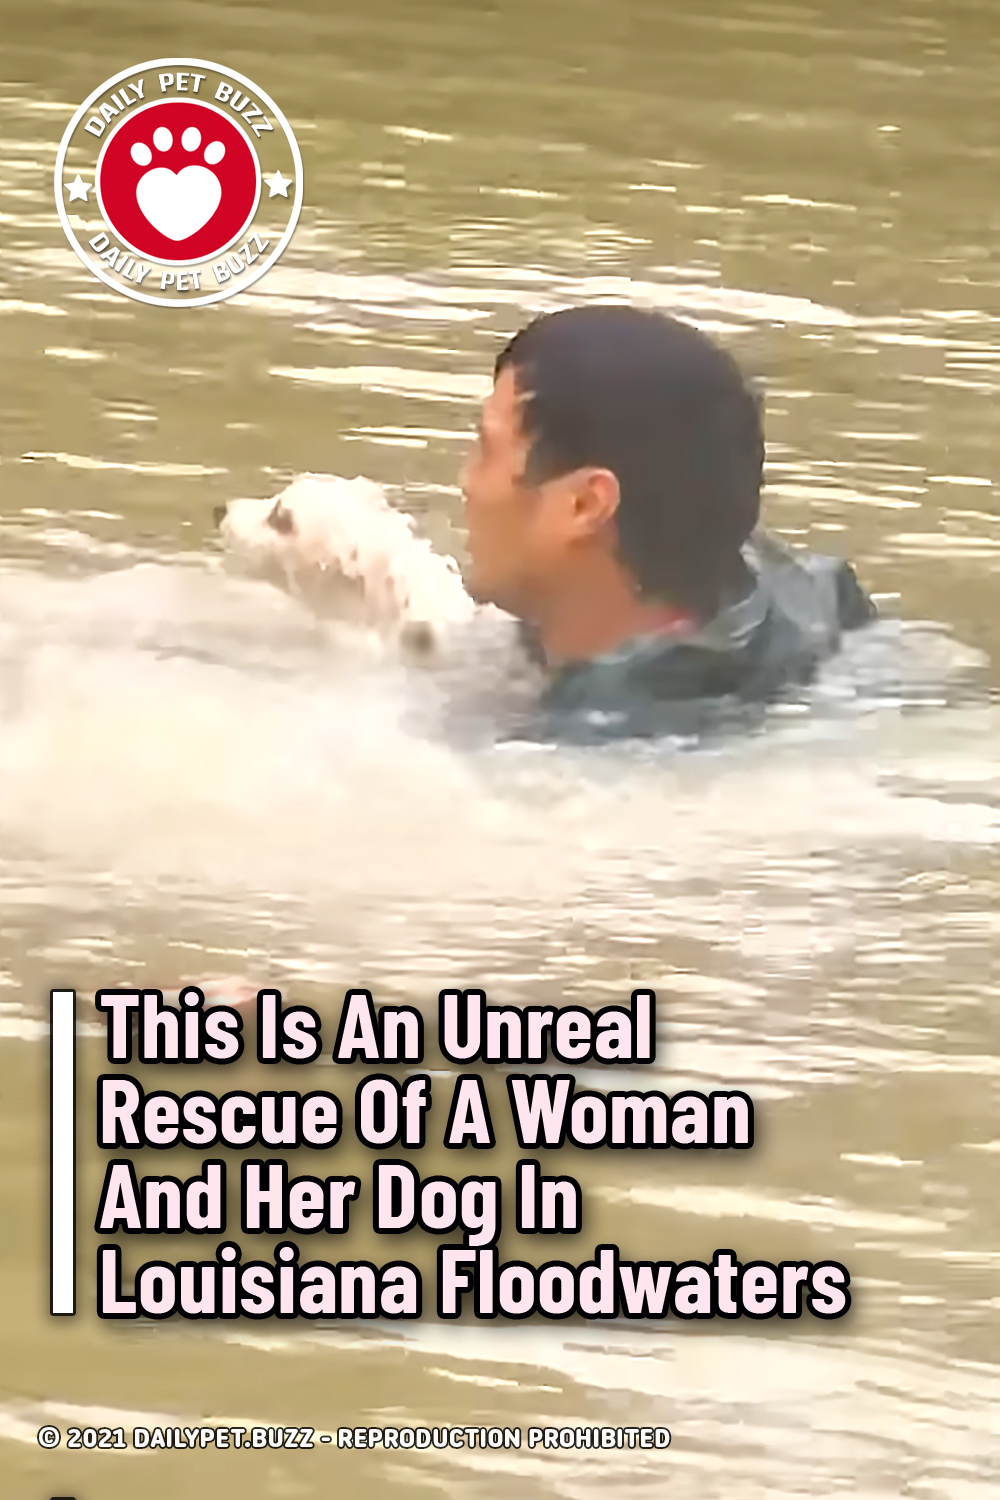 This Is An Unreal Rescue Of A Woman And Her Dog In Louisiana Floodwaters